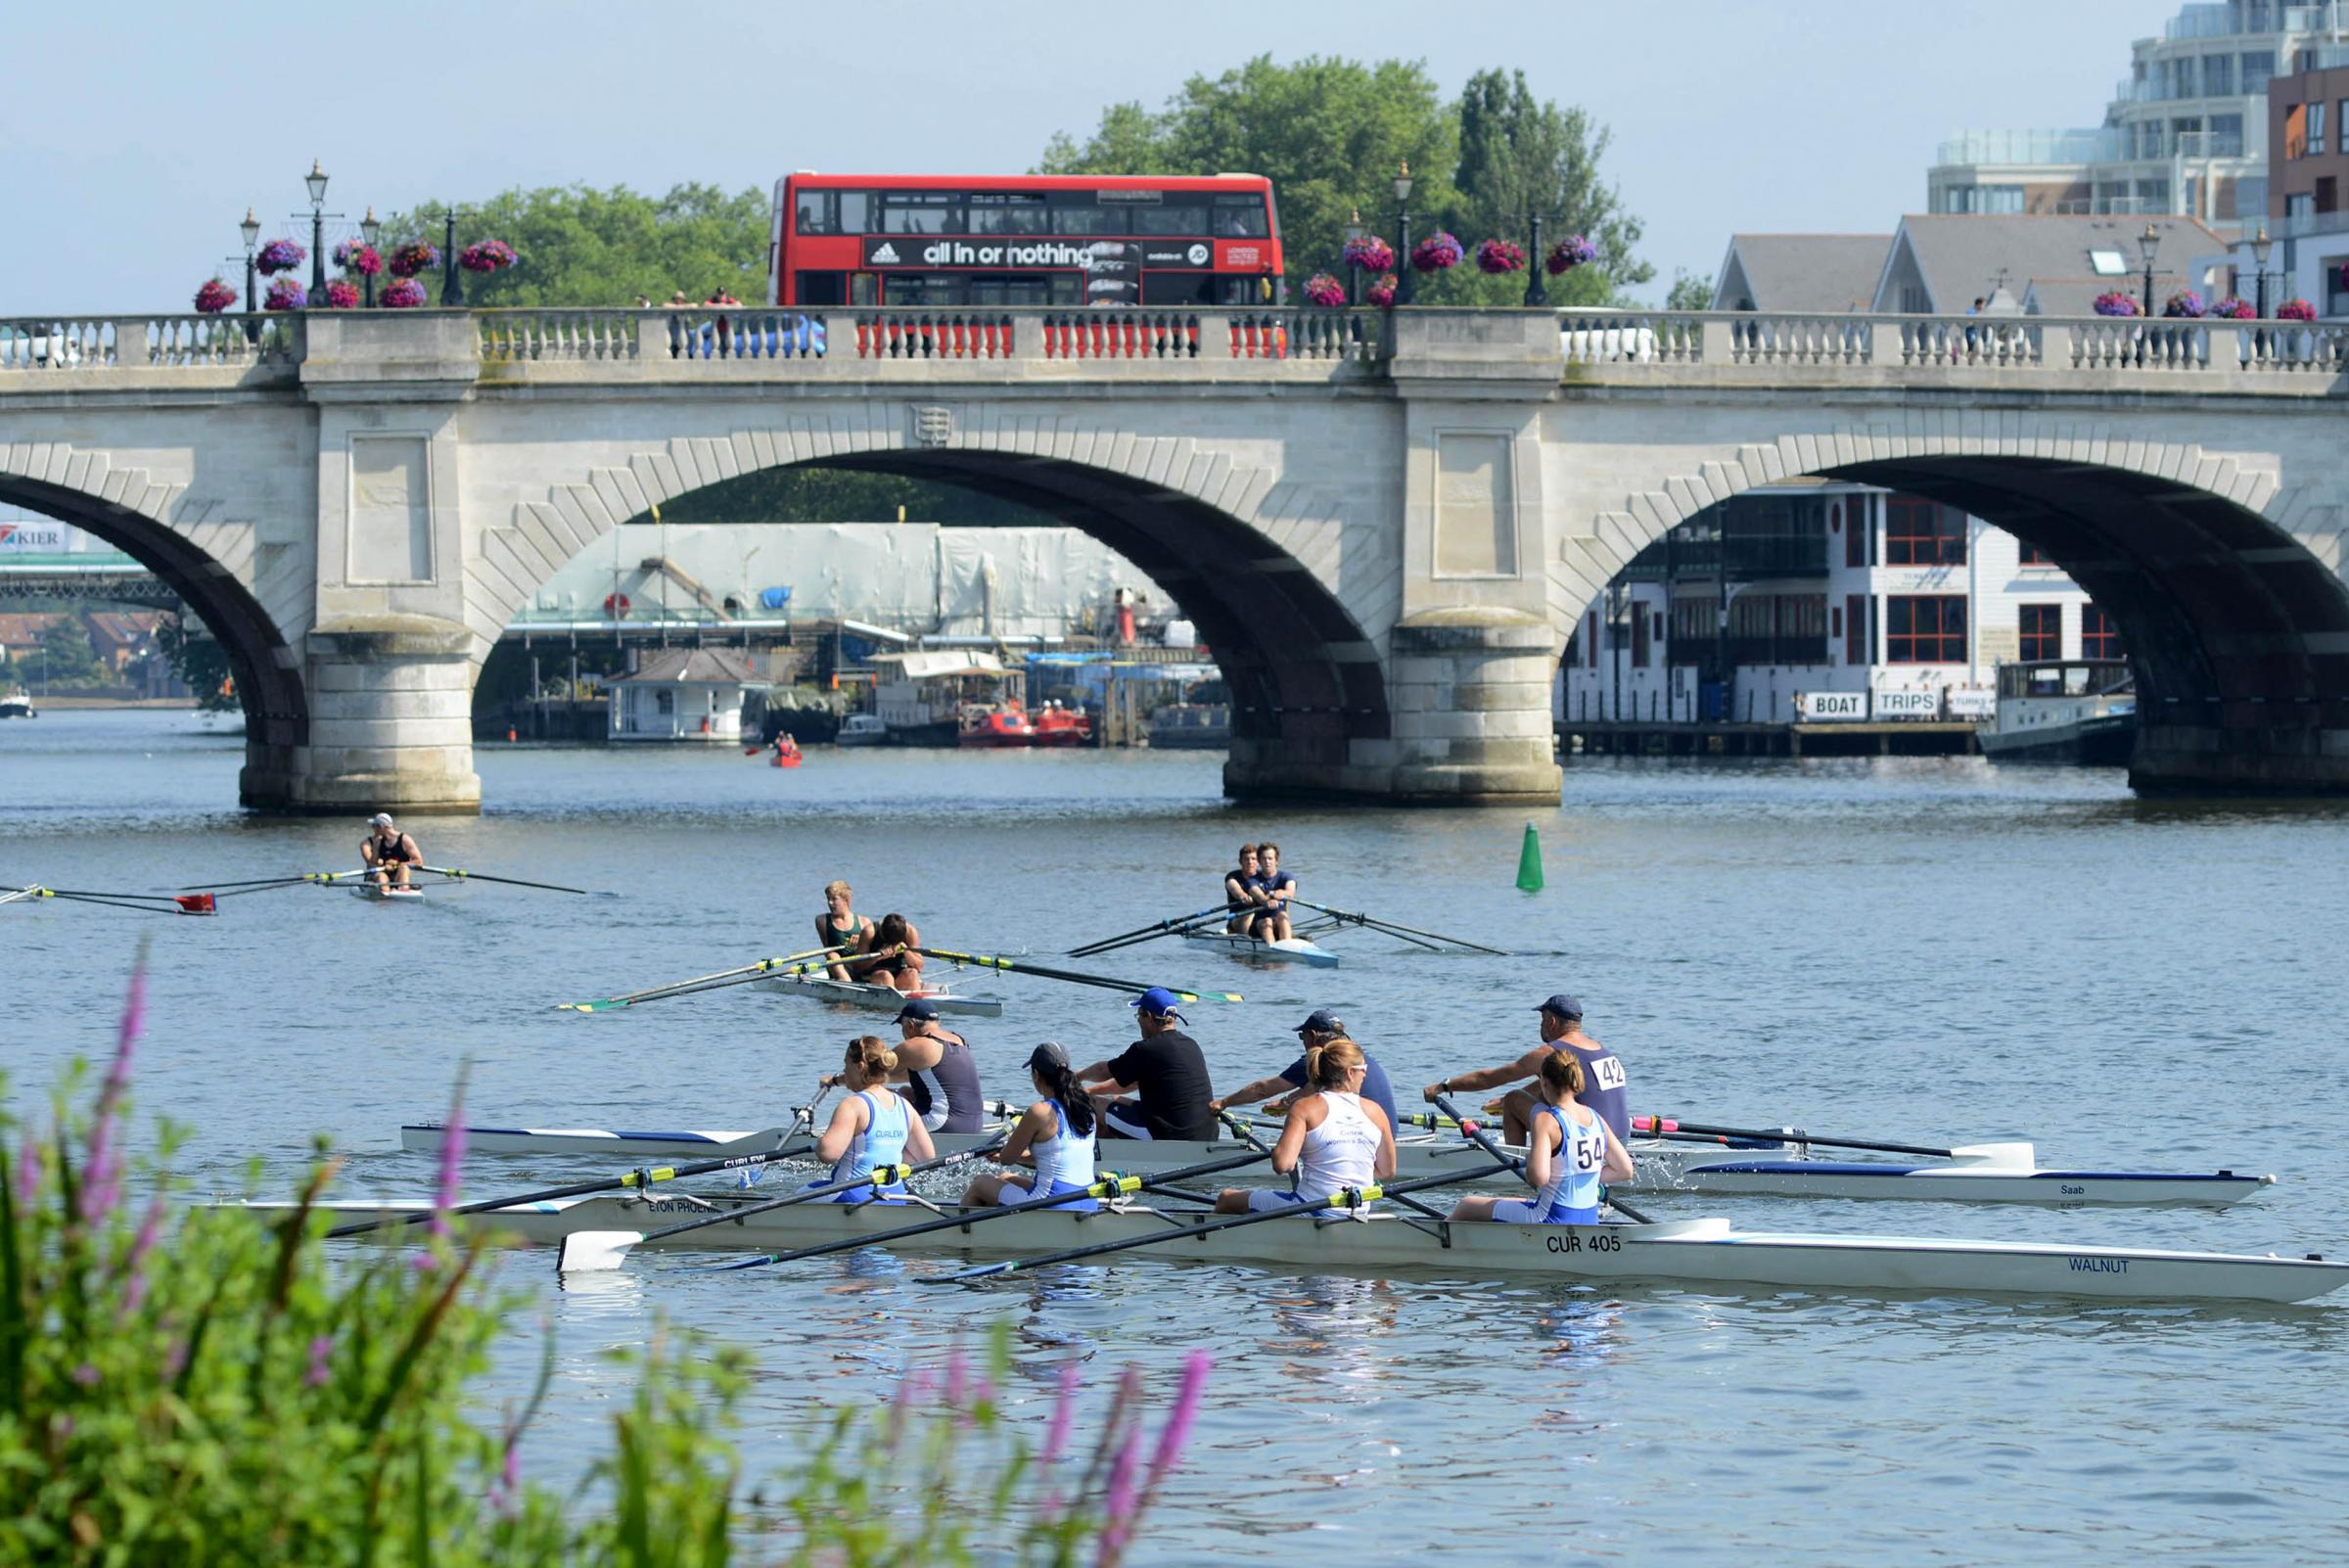 Kingston Guardian: Kingston Regatta, River Thames